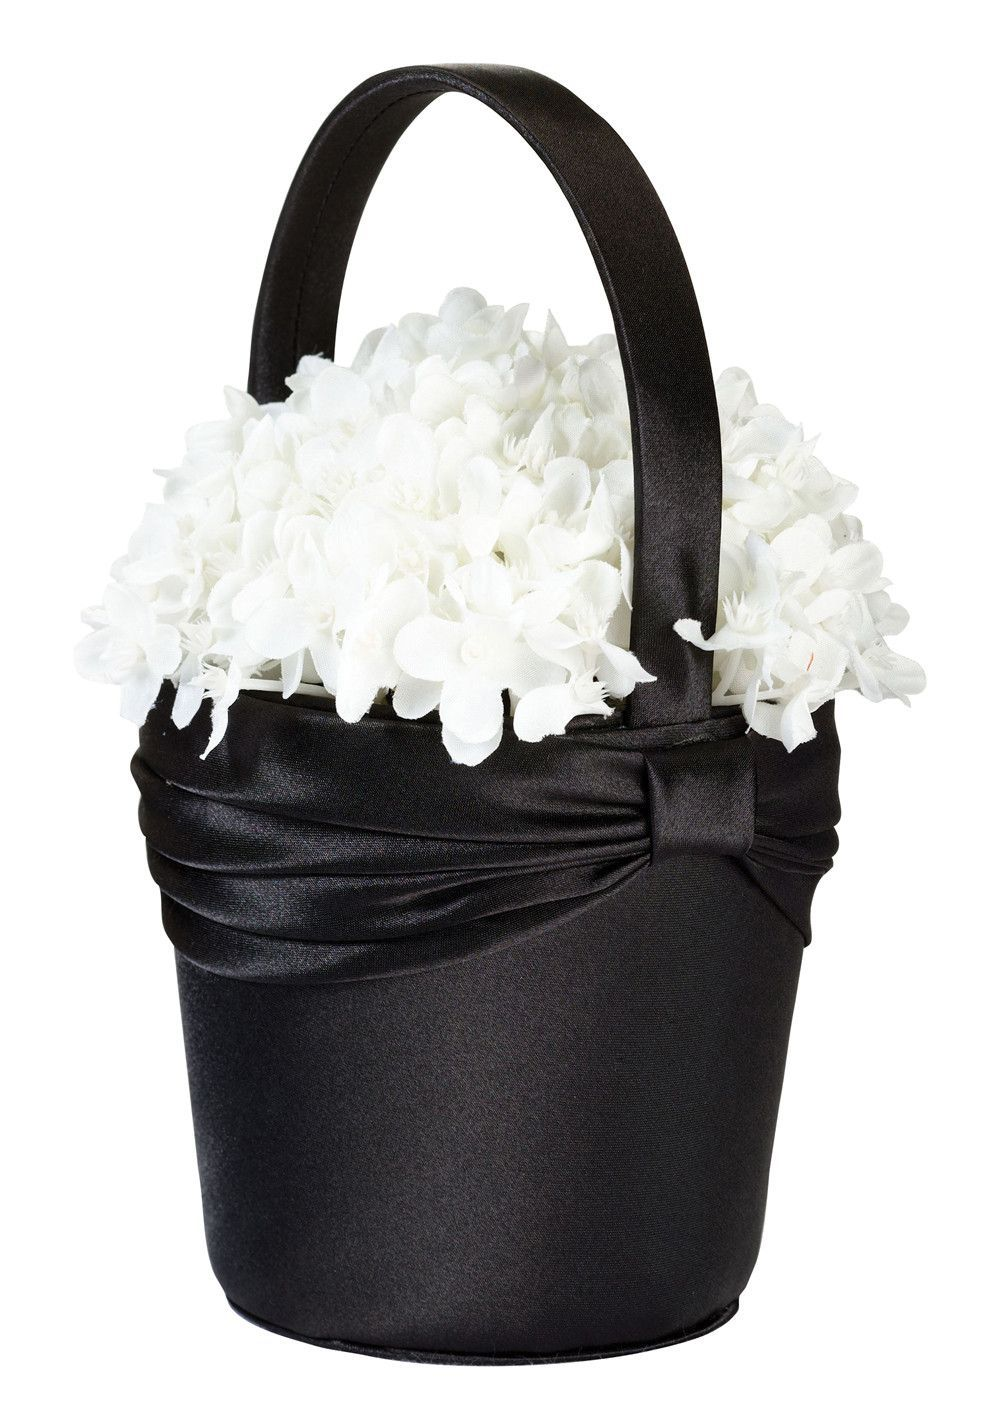 Elegant Black Satin Sash Flower Girl Basket Wedding Ideas